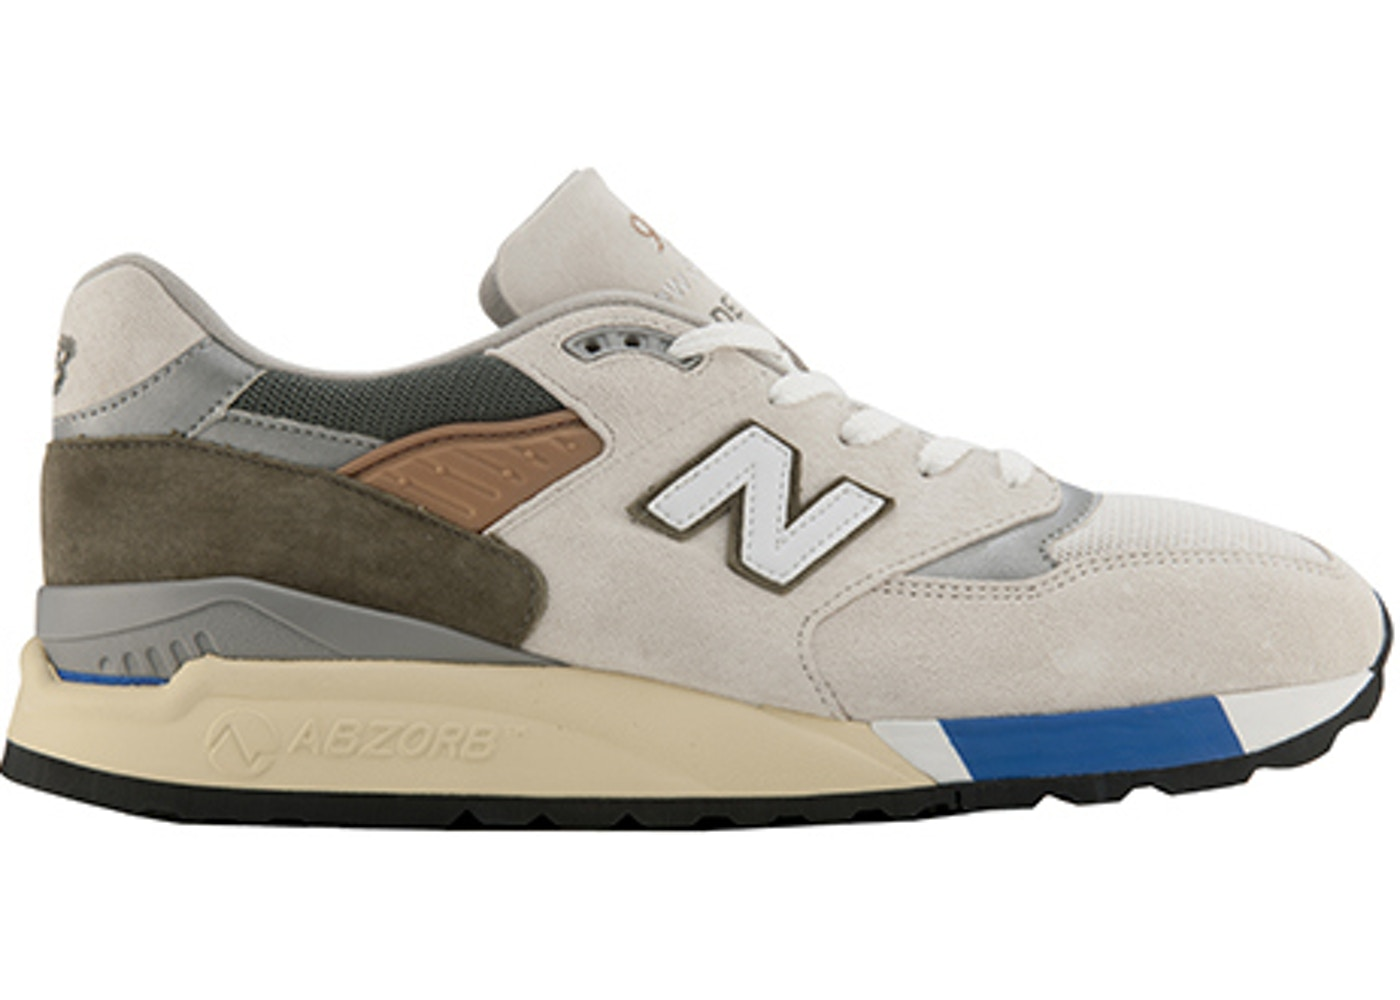 New Balance Size 11 Shoes - Average Sale Price 1770f4307501